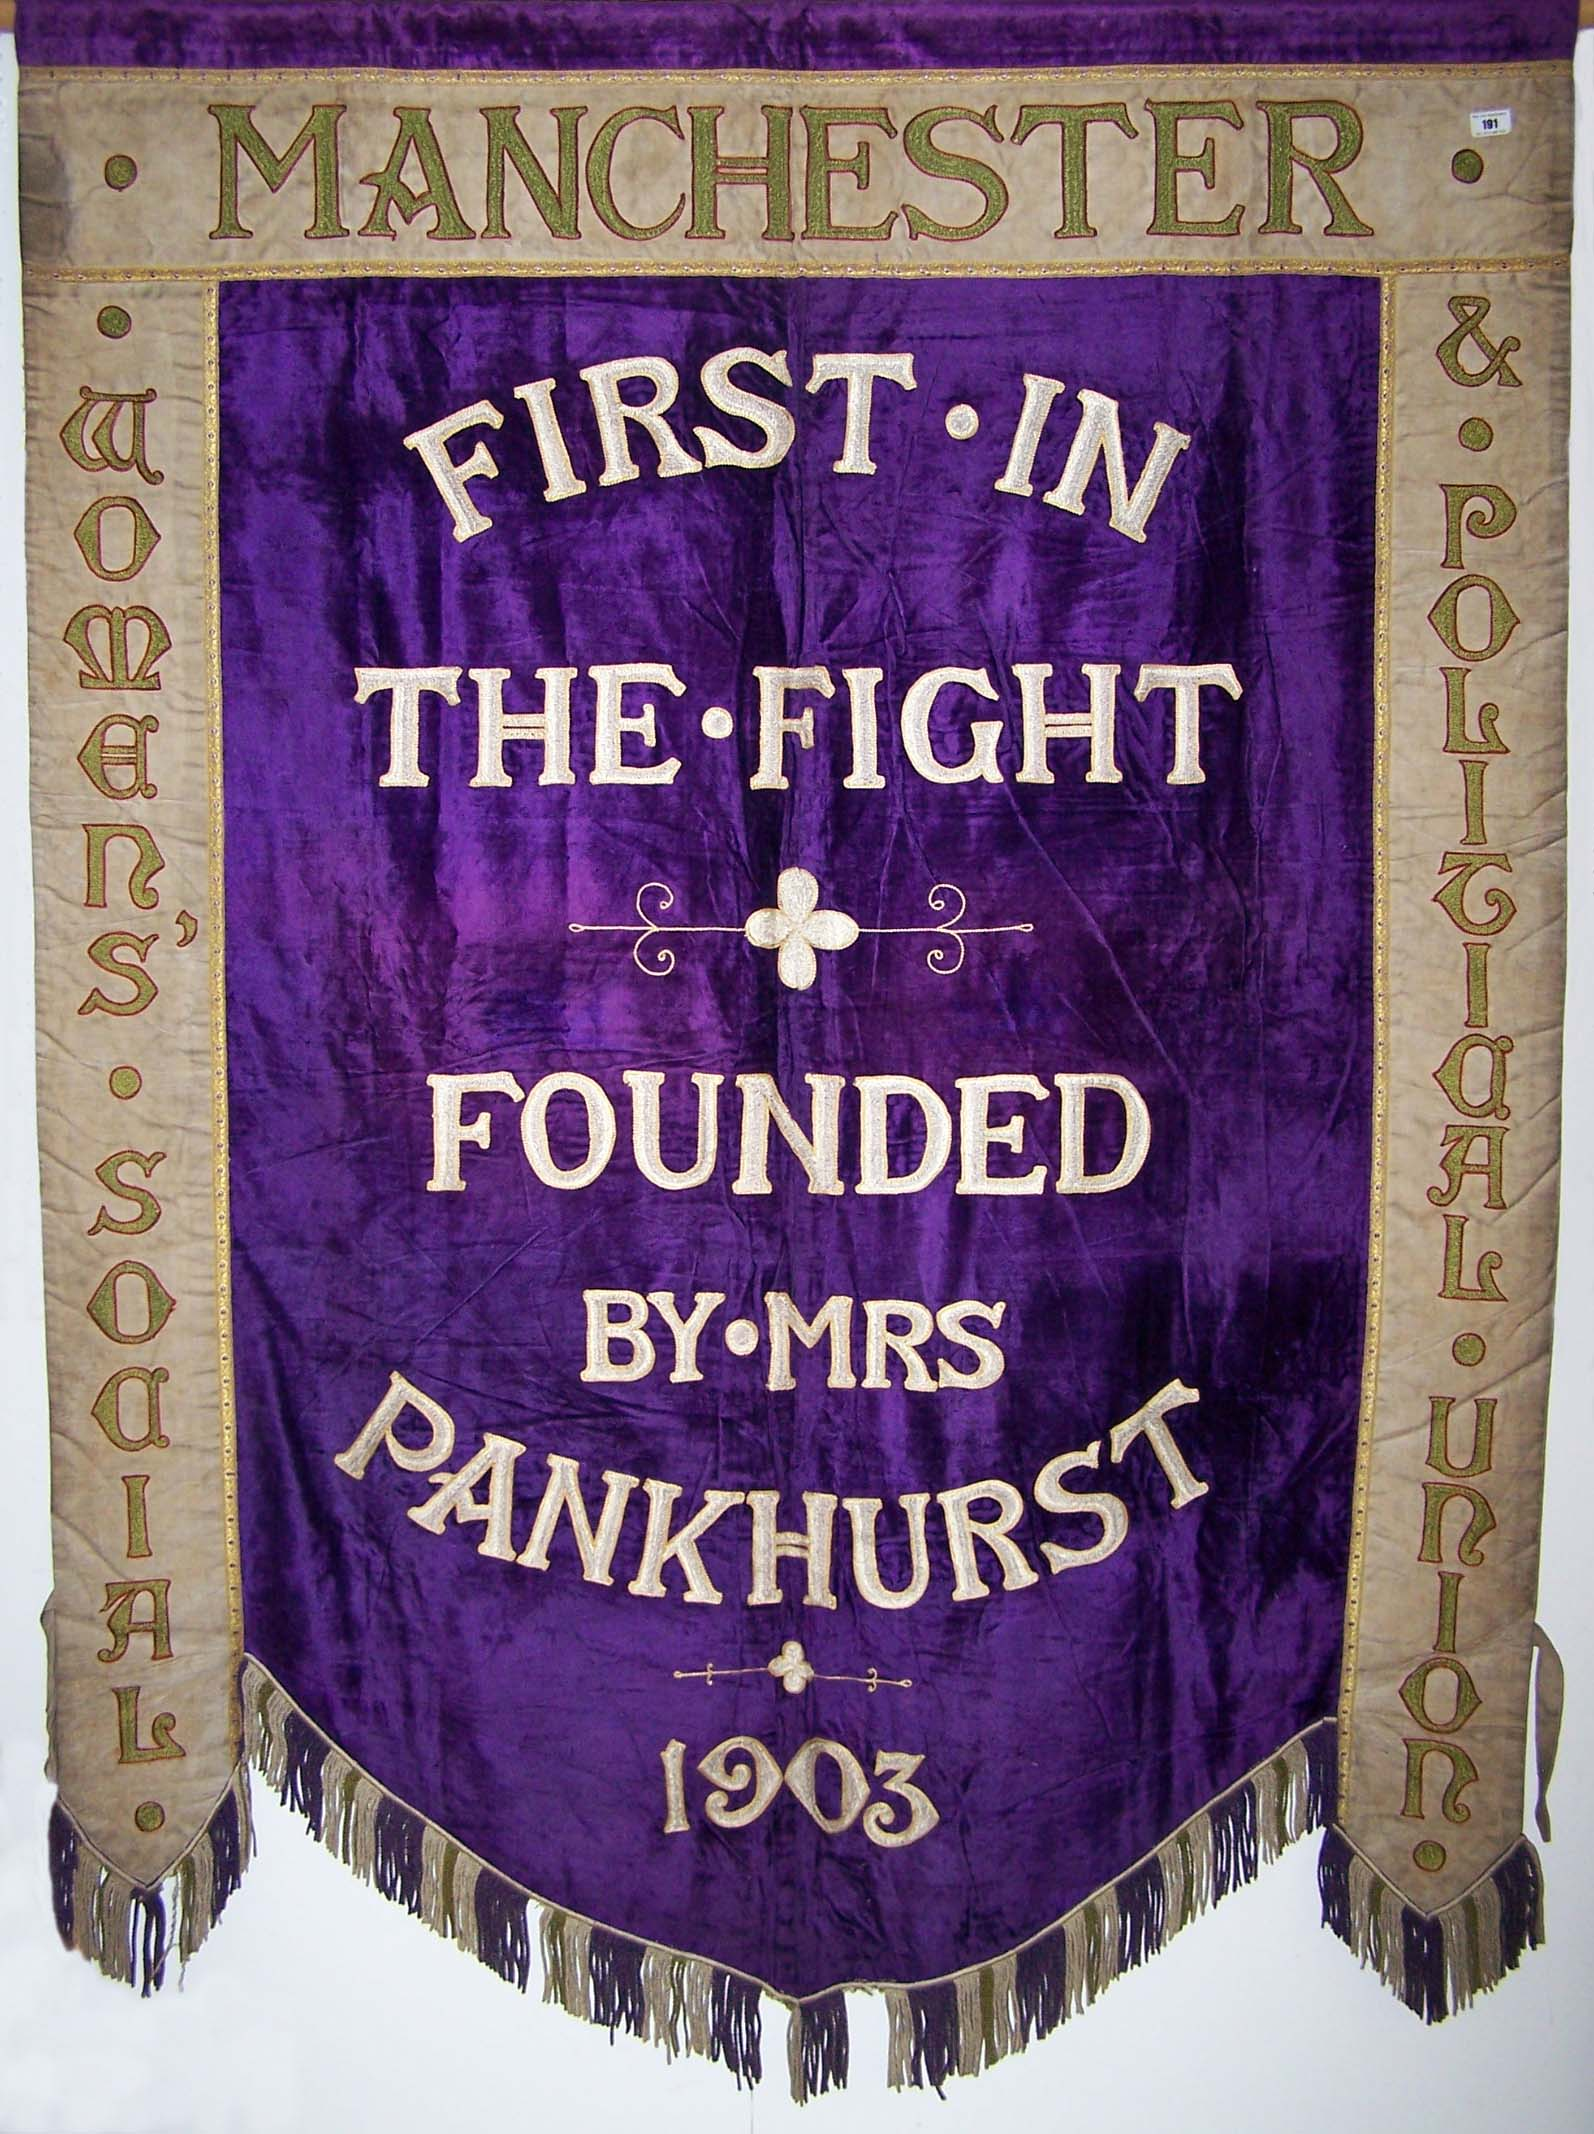 a photo of a purple banner with thee words First in the Fight Founded by Mrs Pankhurst 1903.